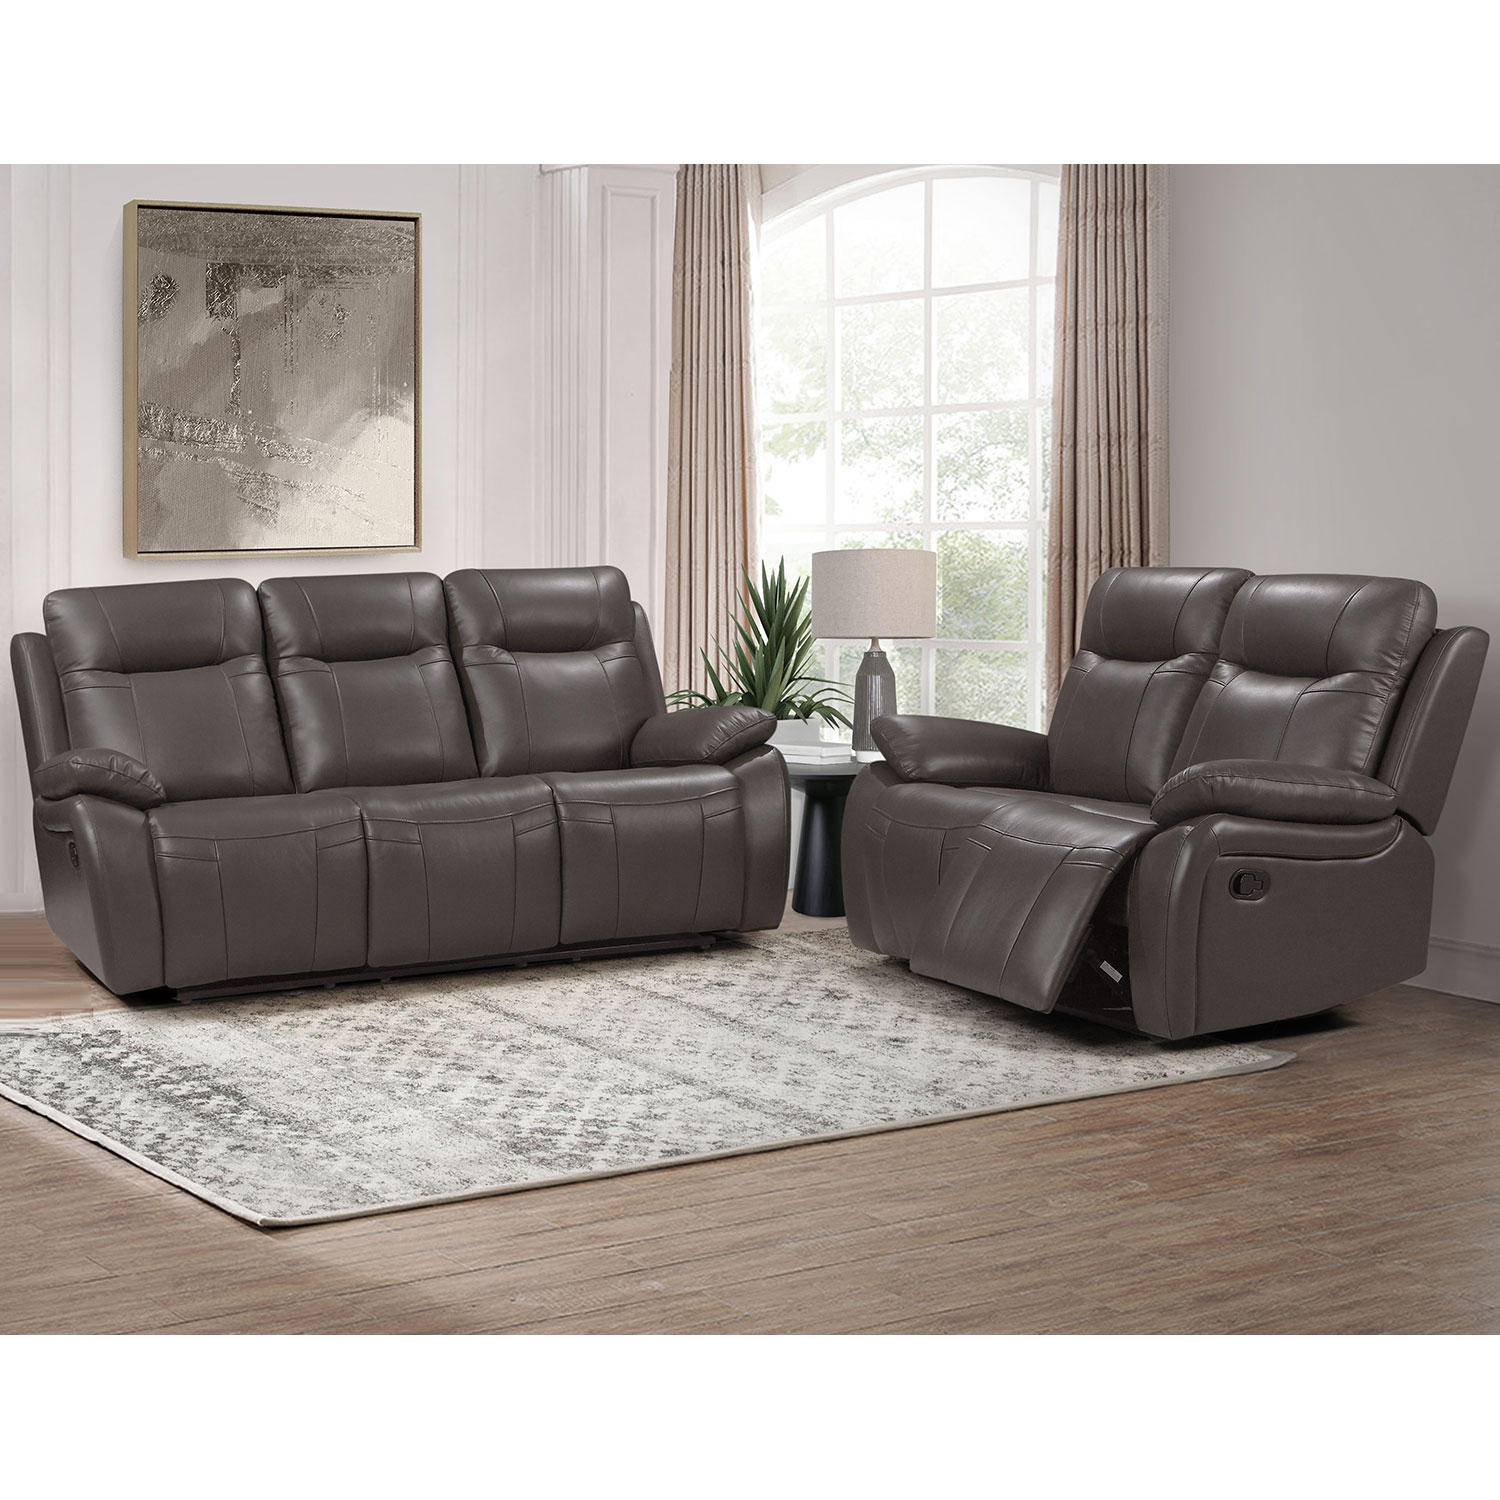 Abbyson Living Riverside Top-Grain Reclining Sofa and Loveseat (Assorted Colors)